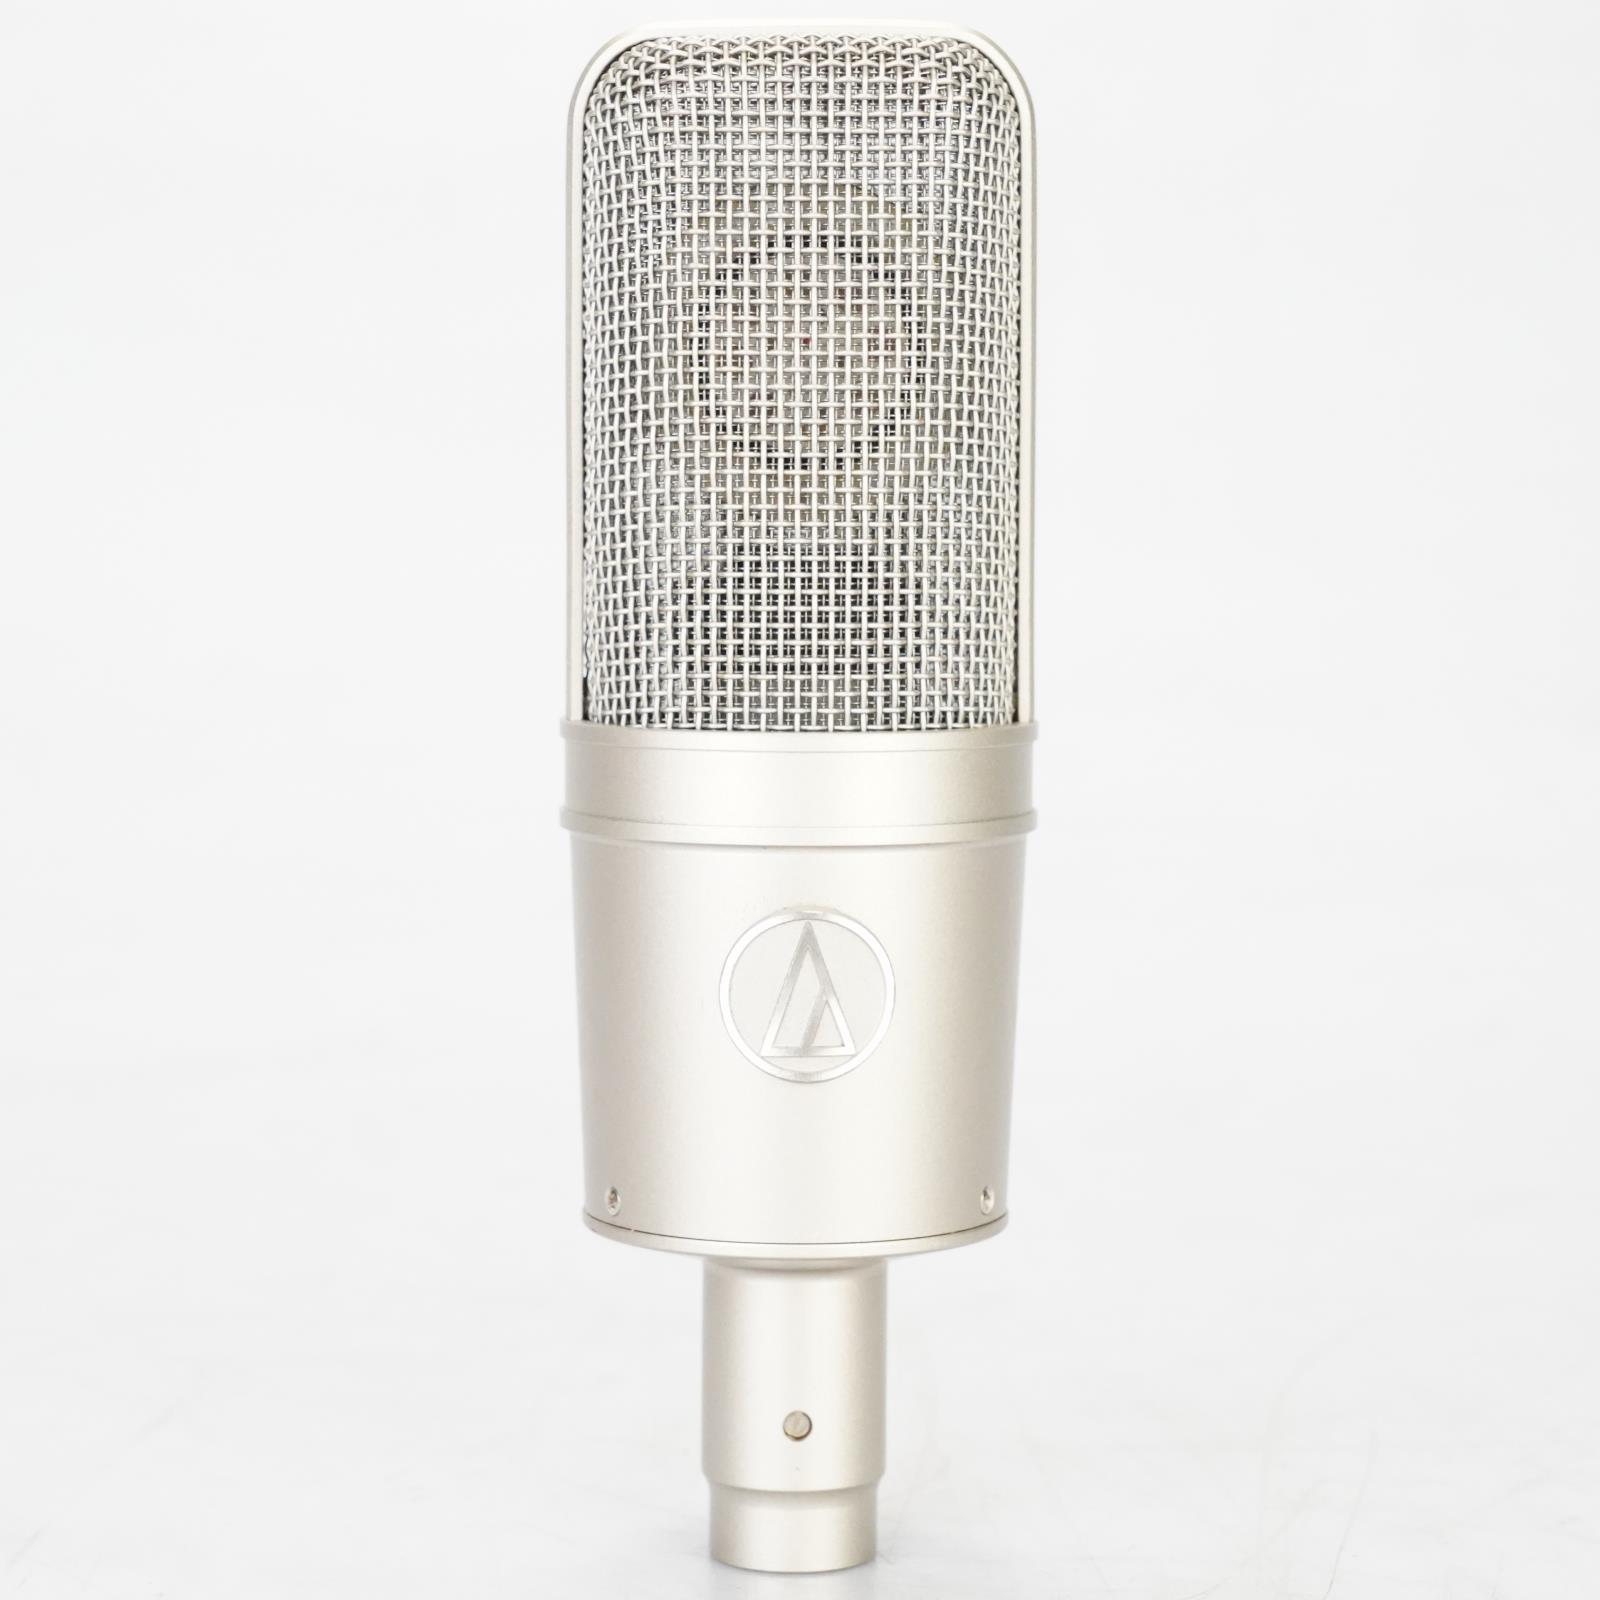 Audio Technica AT4047/SV Cardioid Condenser Microphone Ed Cherney #39022